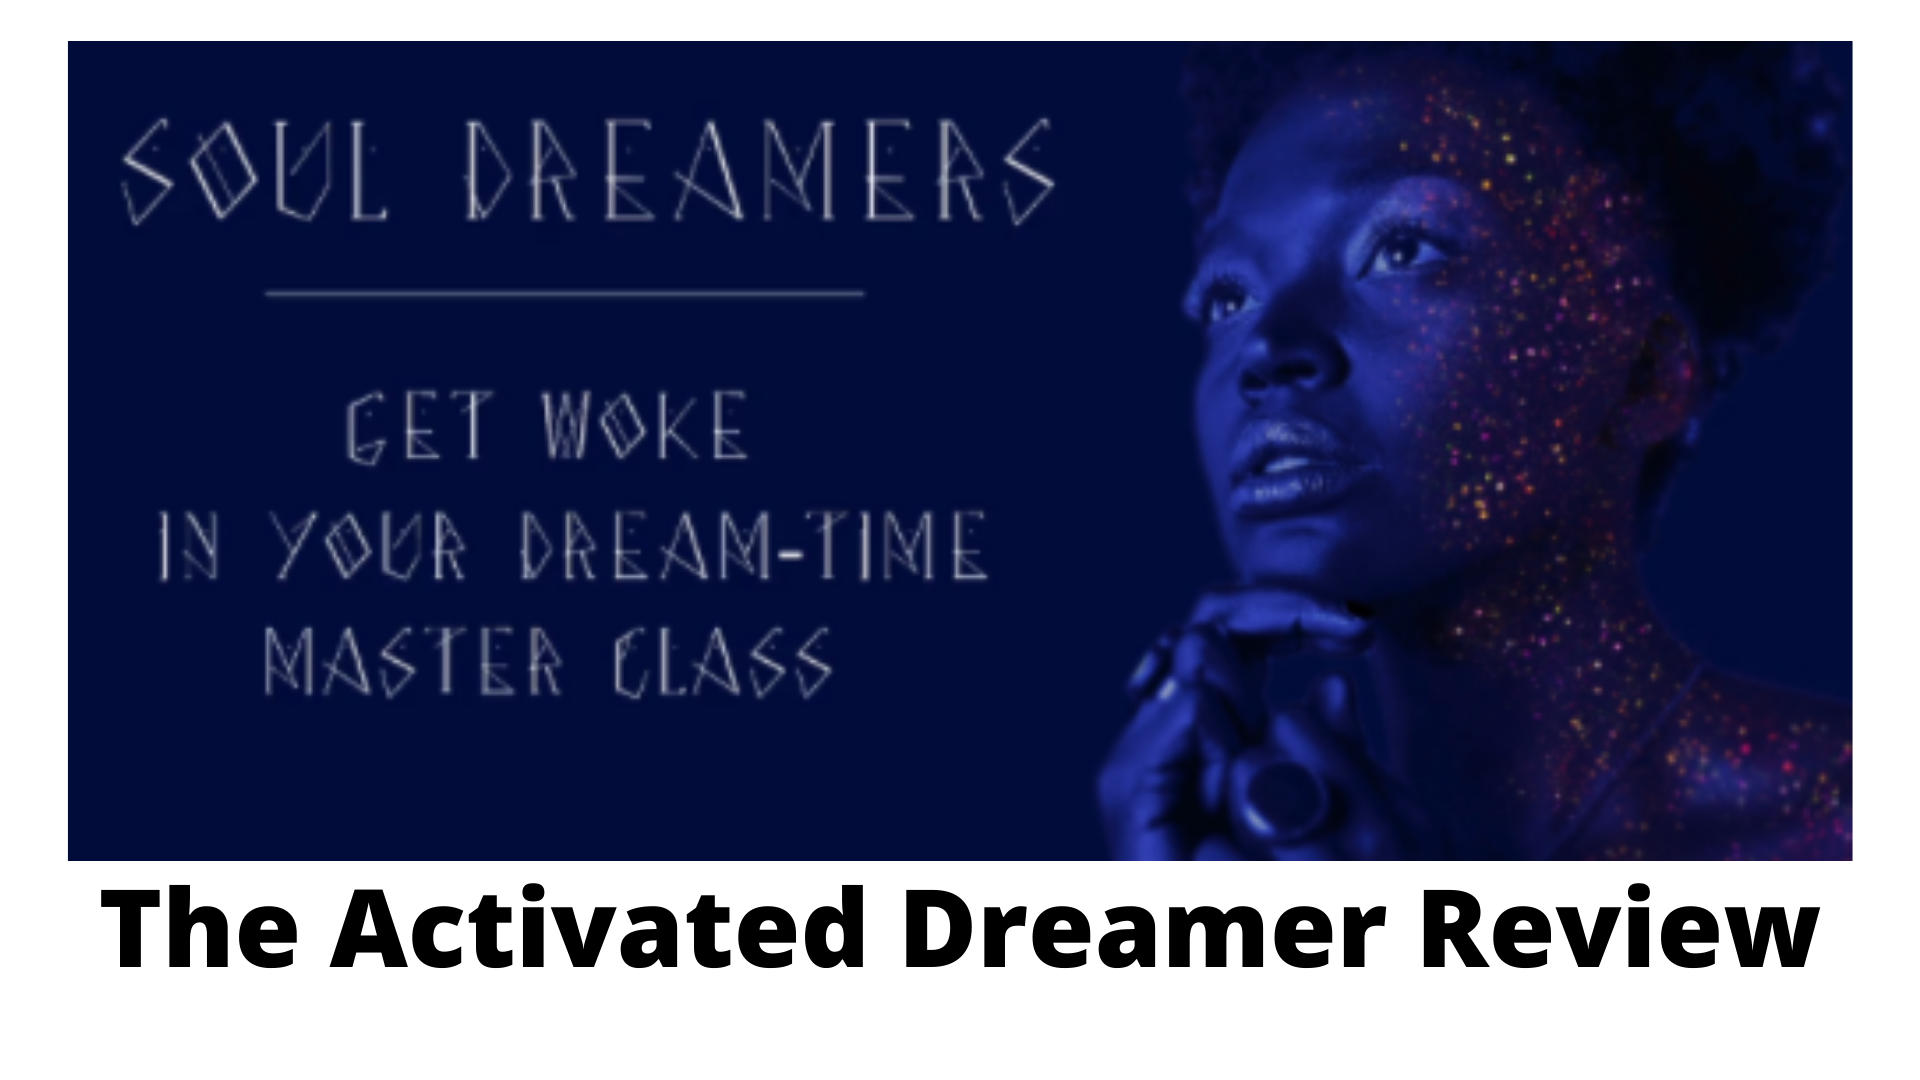 The Activated Dreamer Review